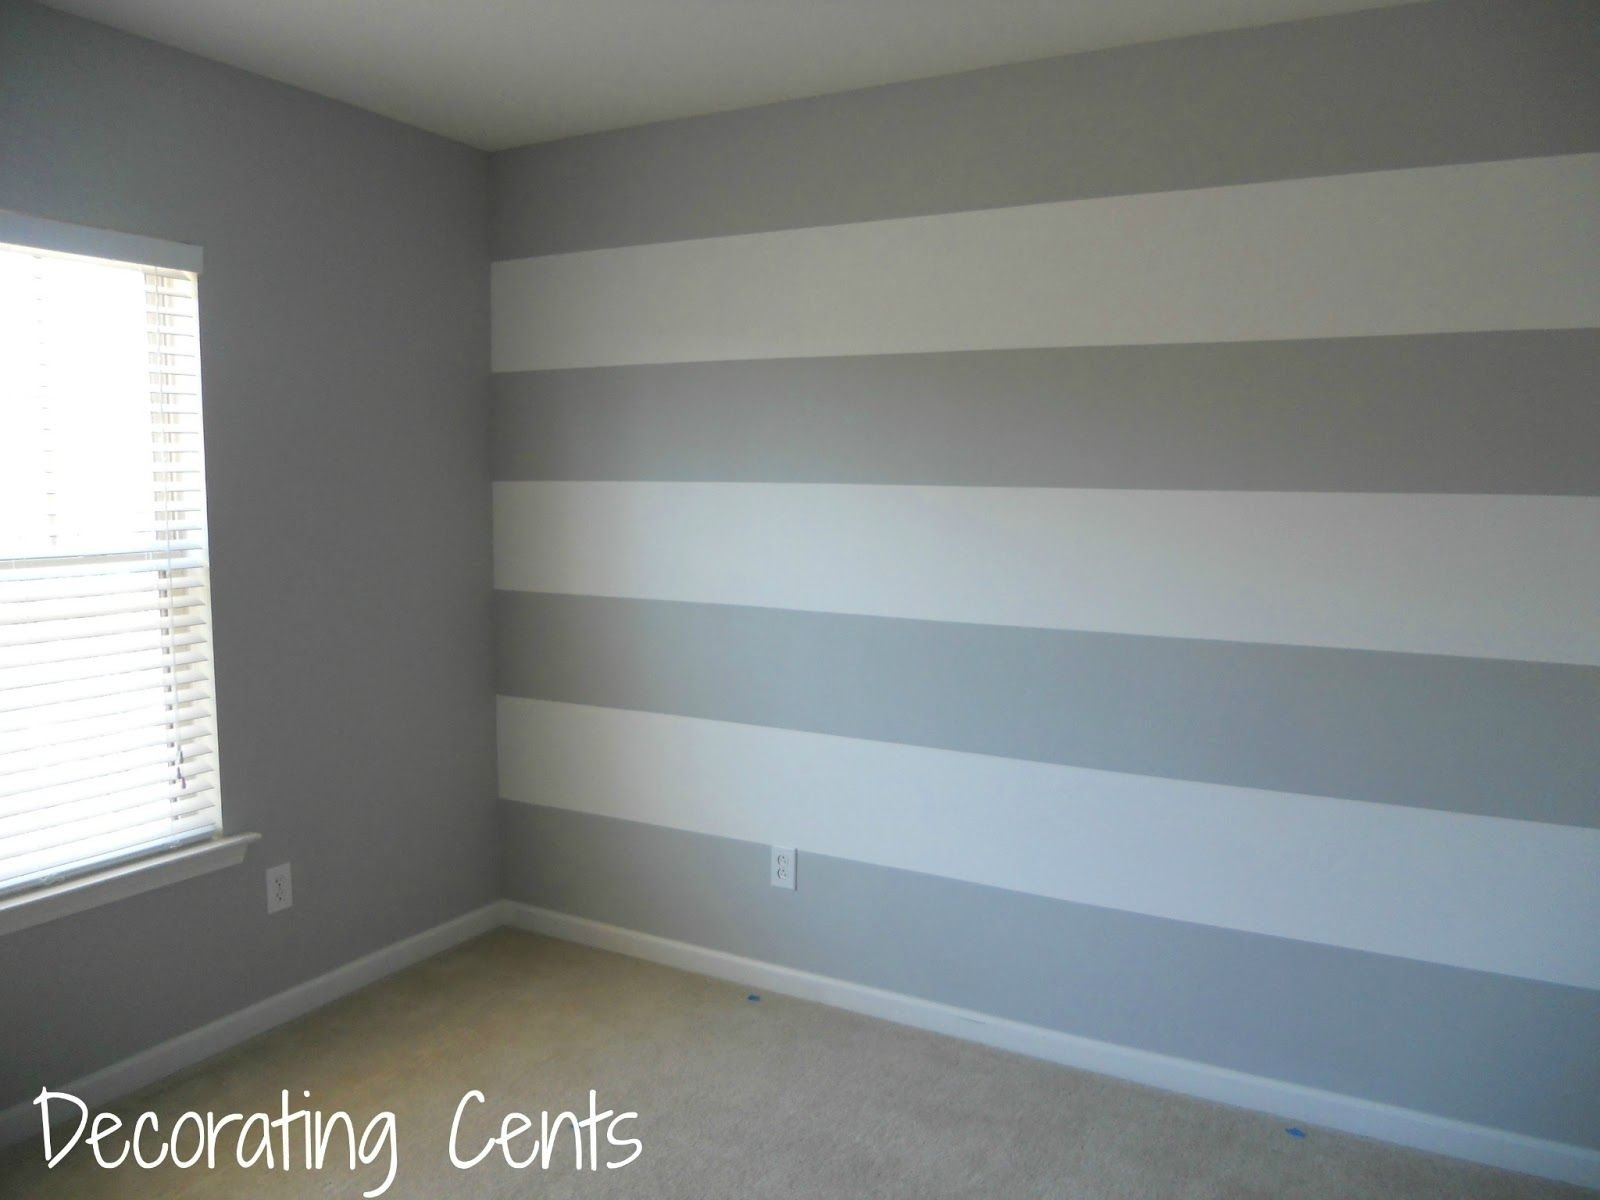 Decorating Cents: Painting A Striped Wall | Bedrooms | Pinterest In Most Recently Released Vertical Stripes Wall Accents (View 6 of 15)